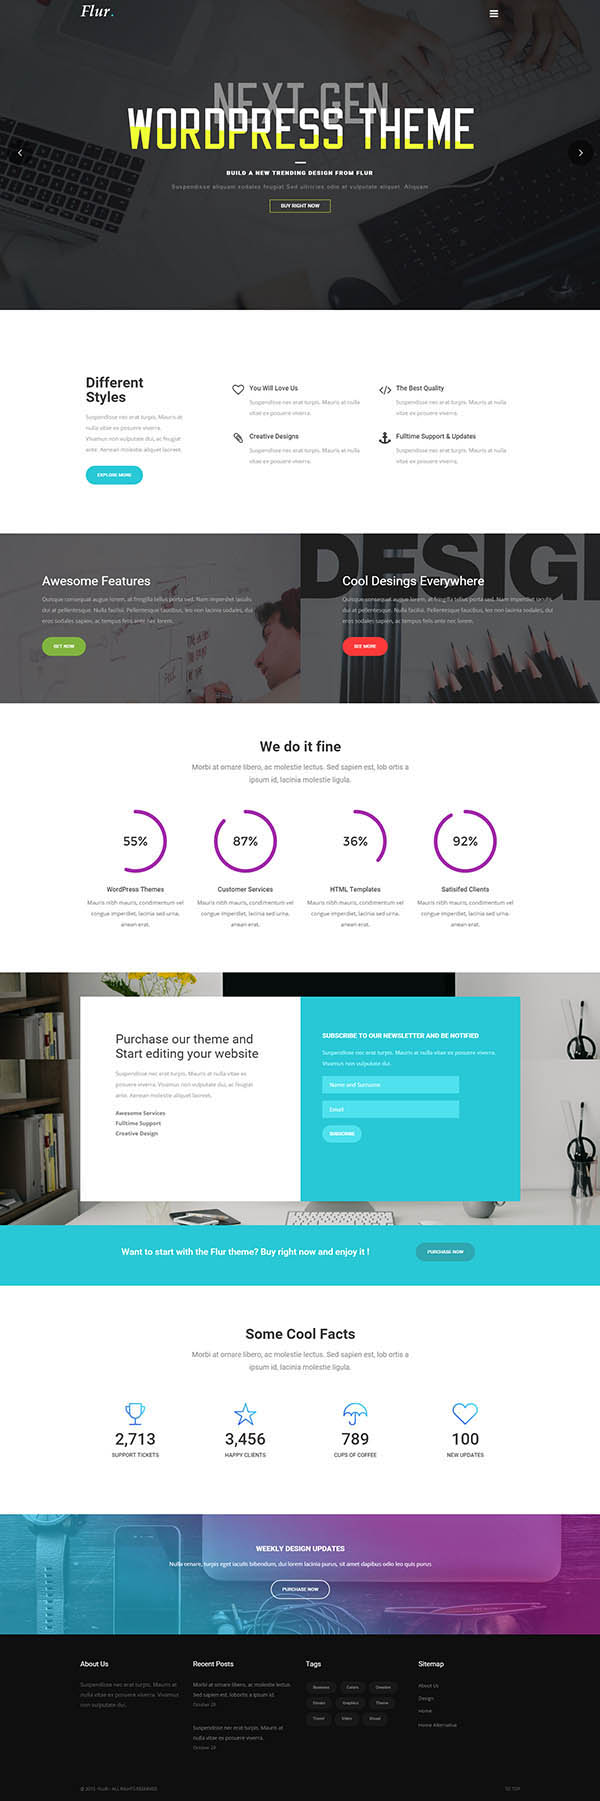 Flur – Creative WordPress Theme